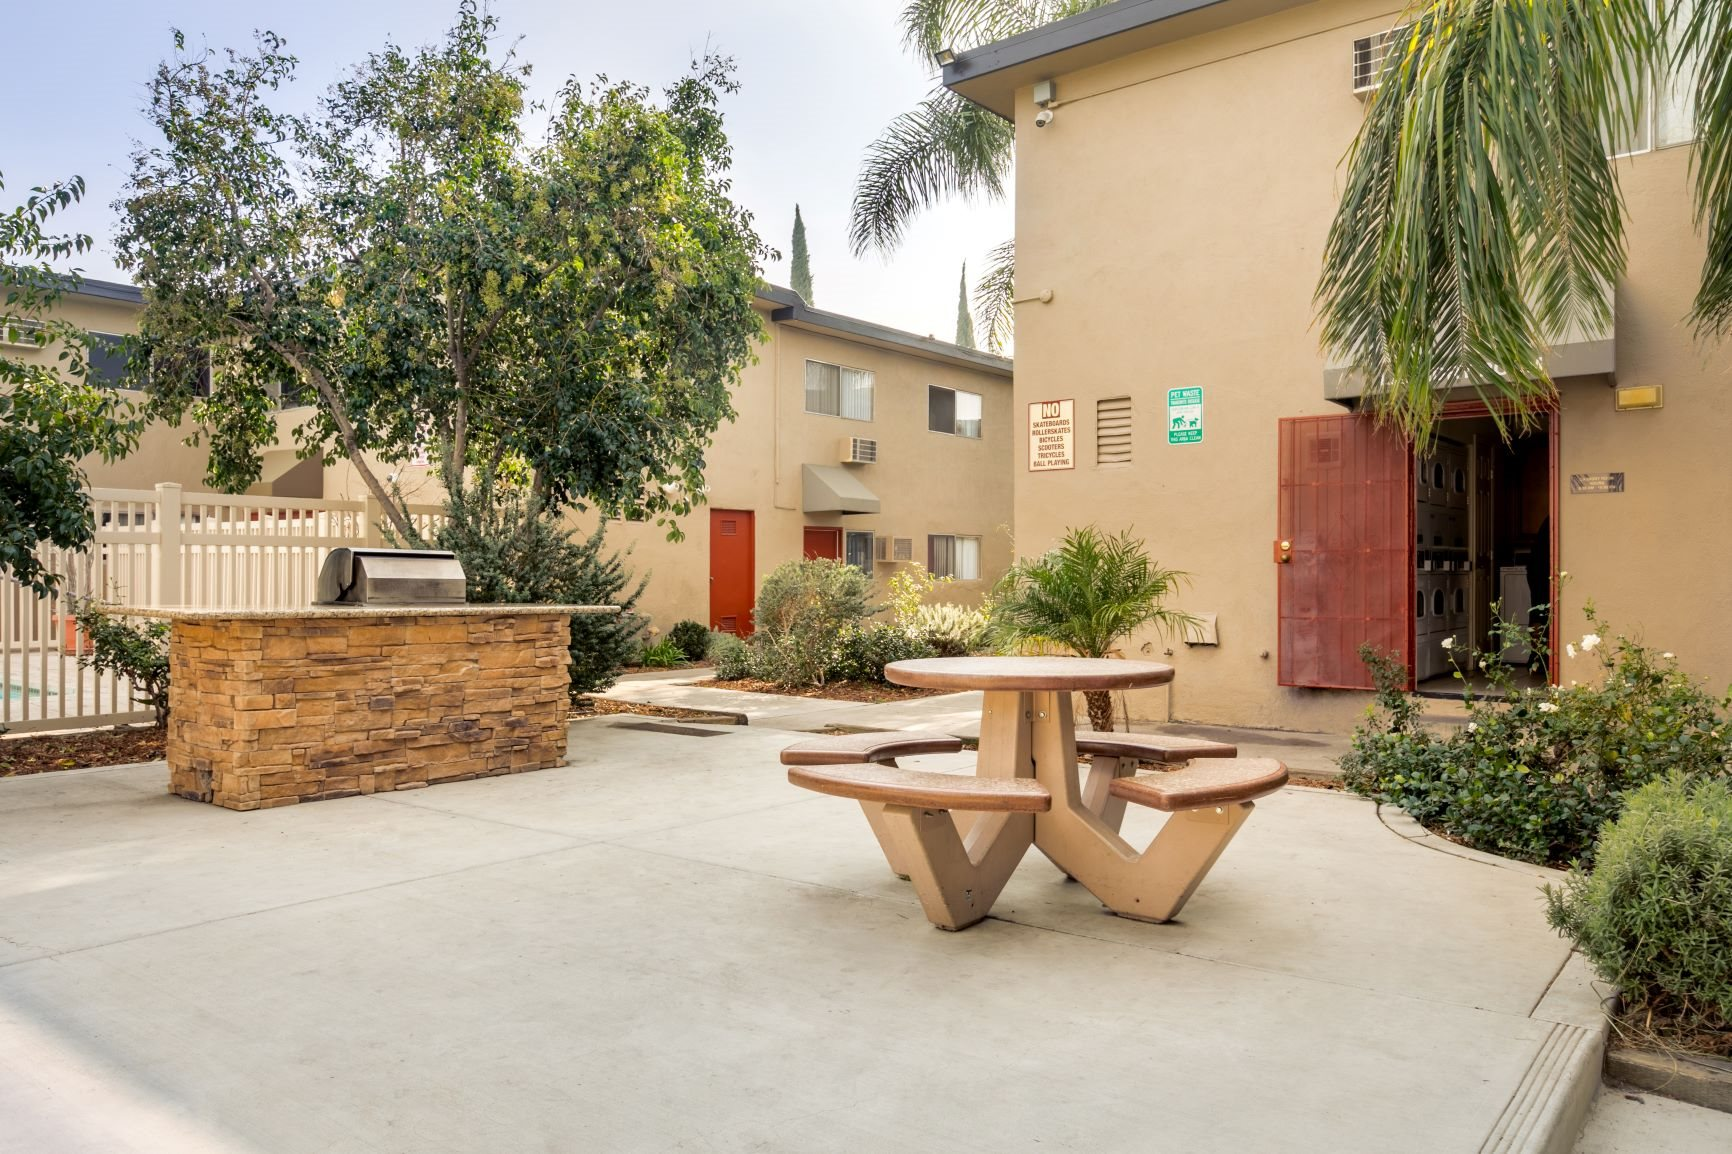 BBQ Area and Courtyard